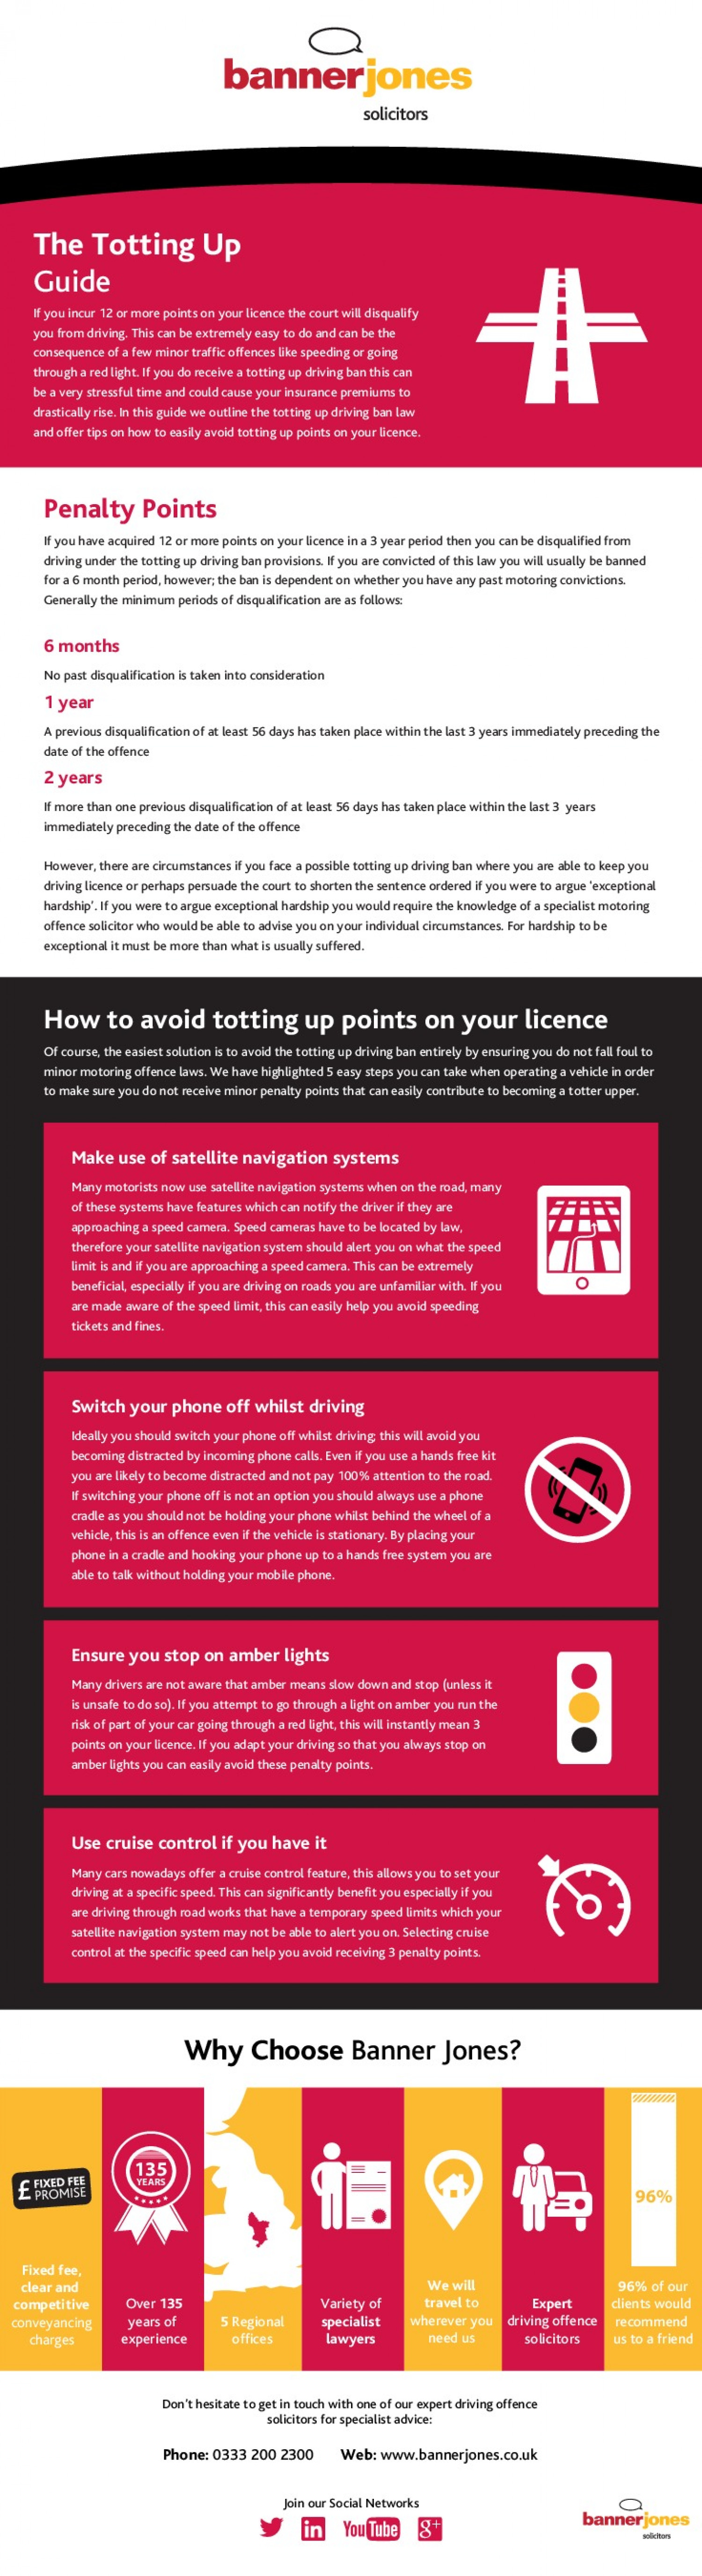 Totting Up Guide - Avoid a Driving Ban Infographic